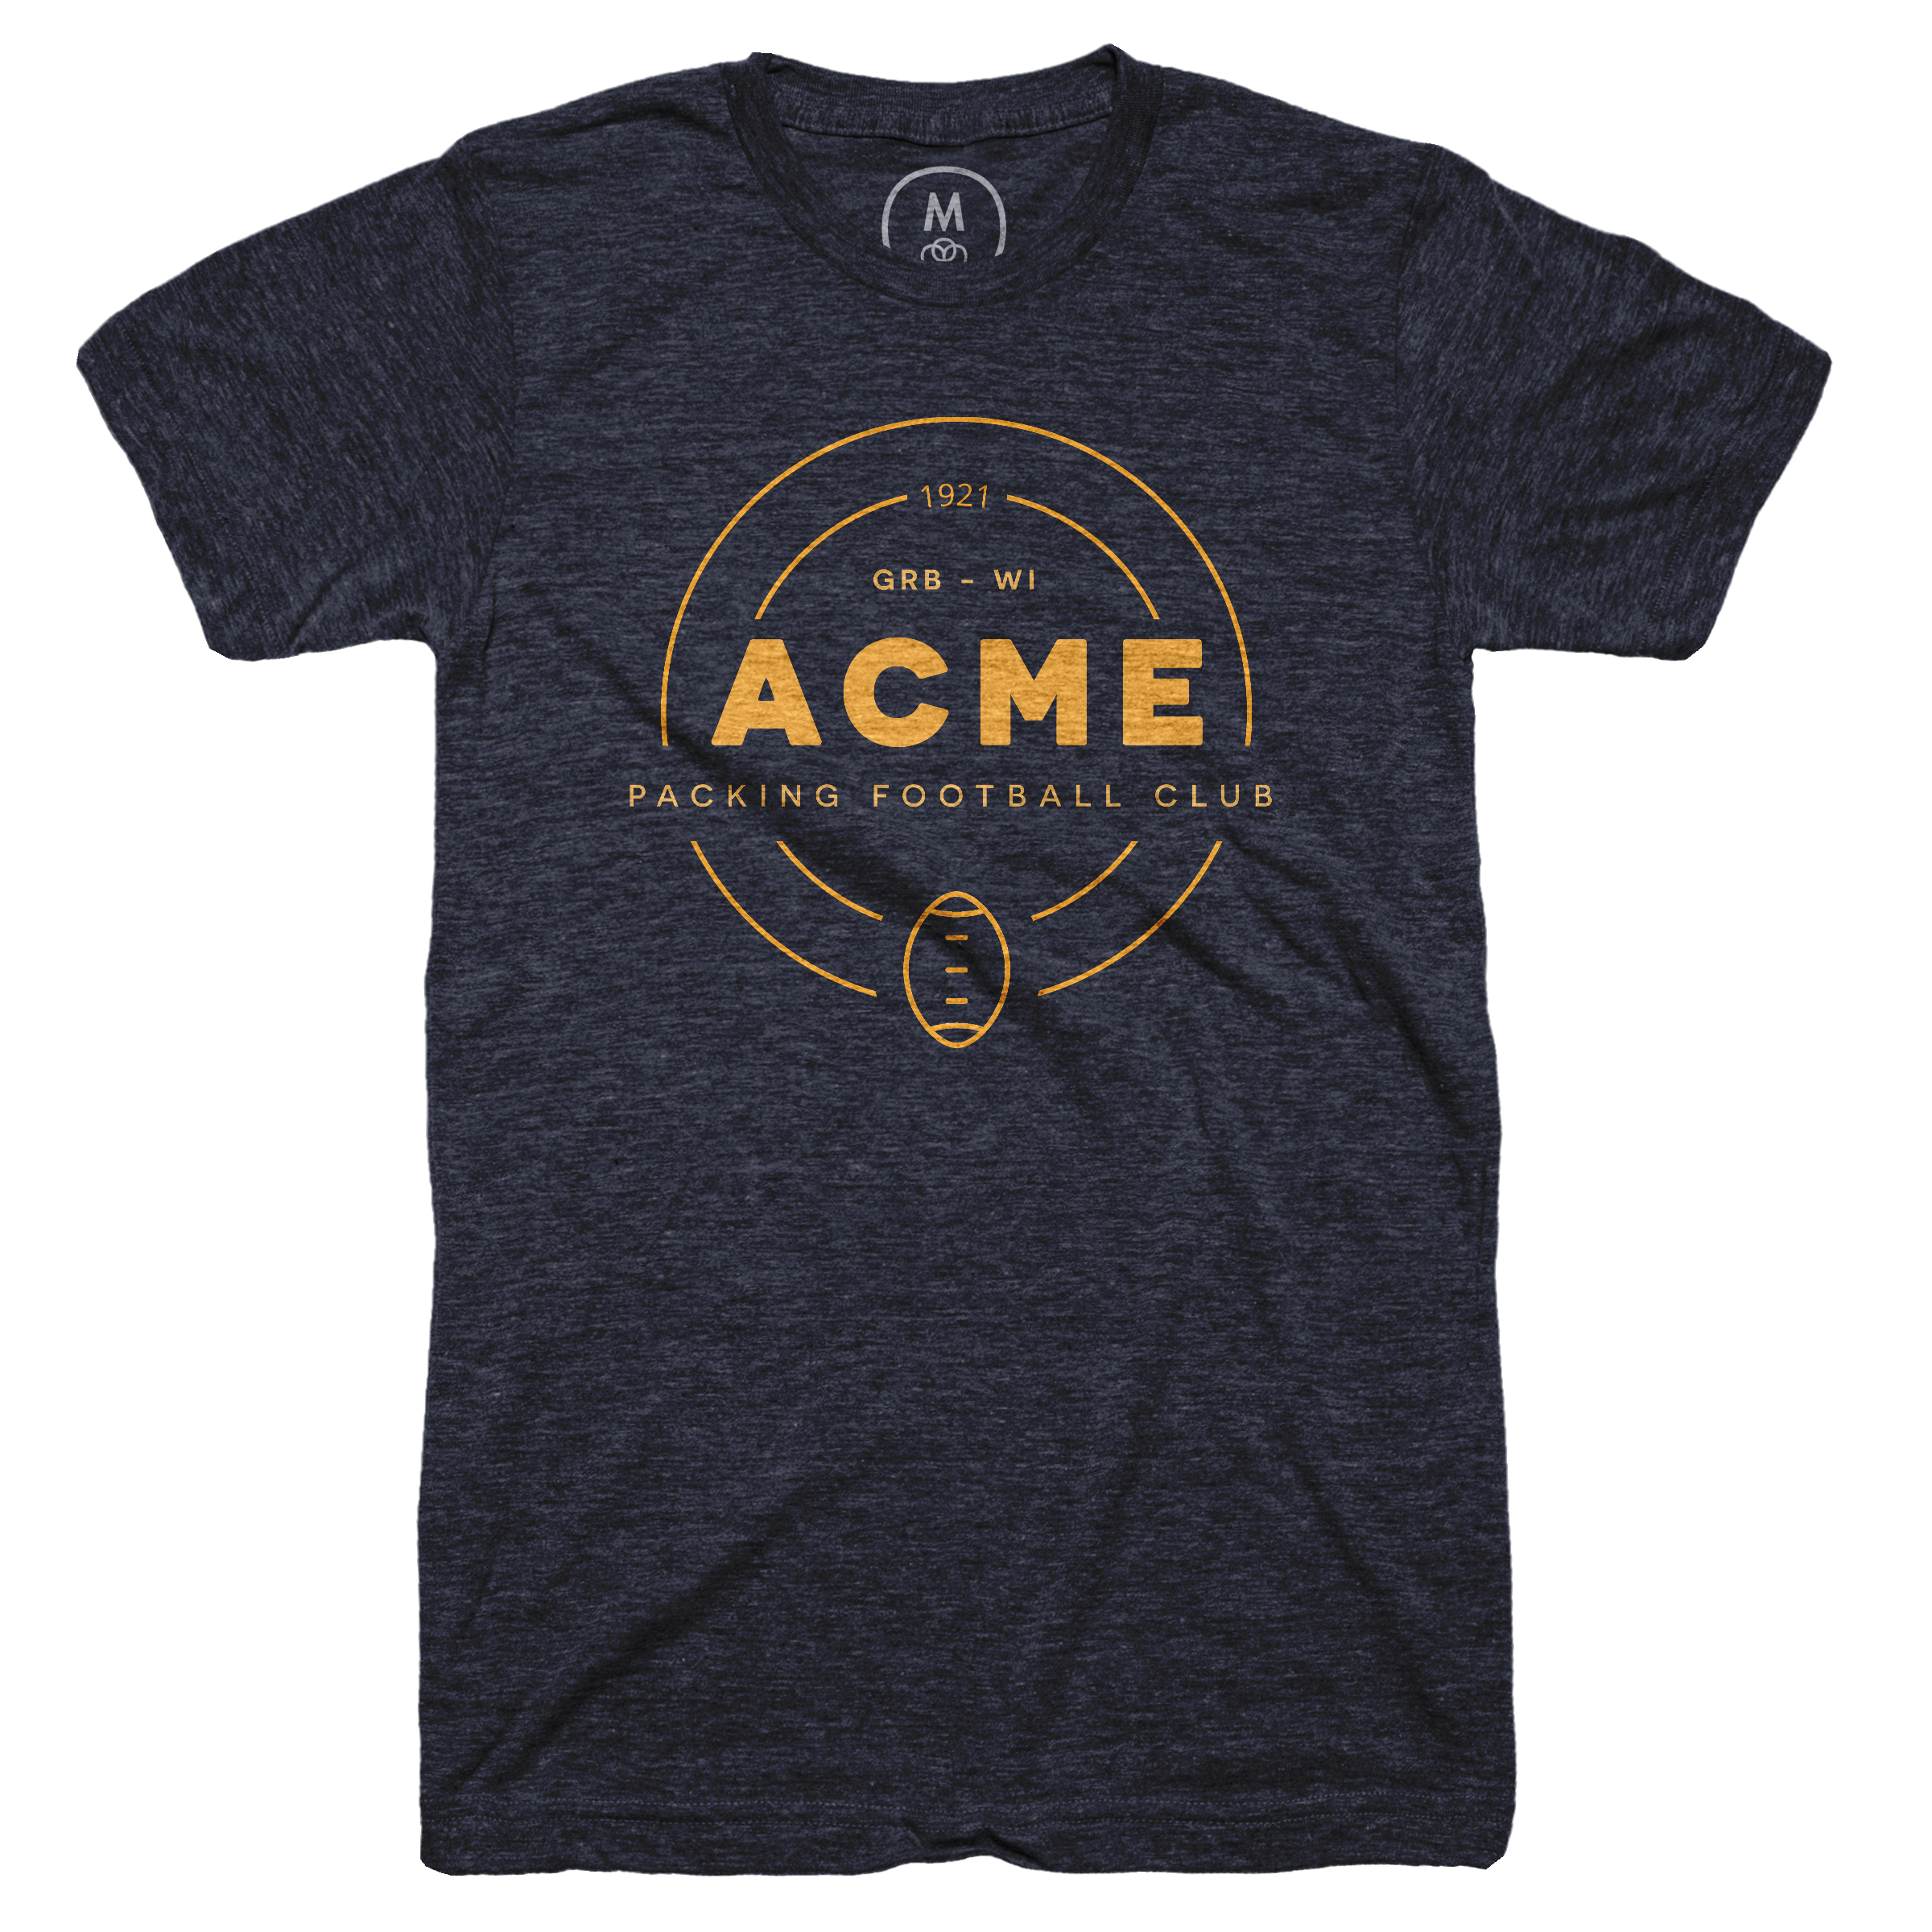 ACME Packing Football Club